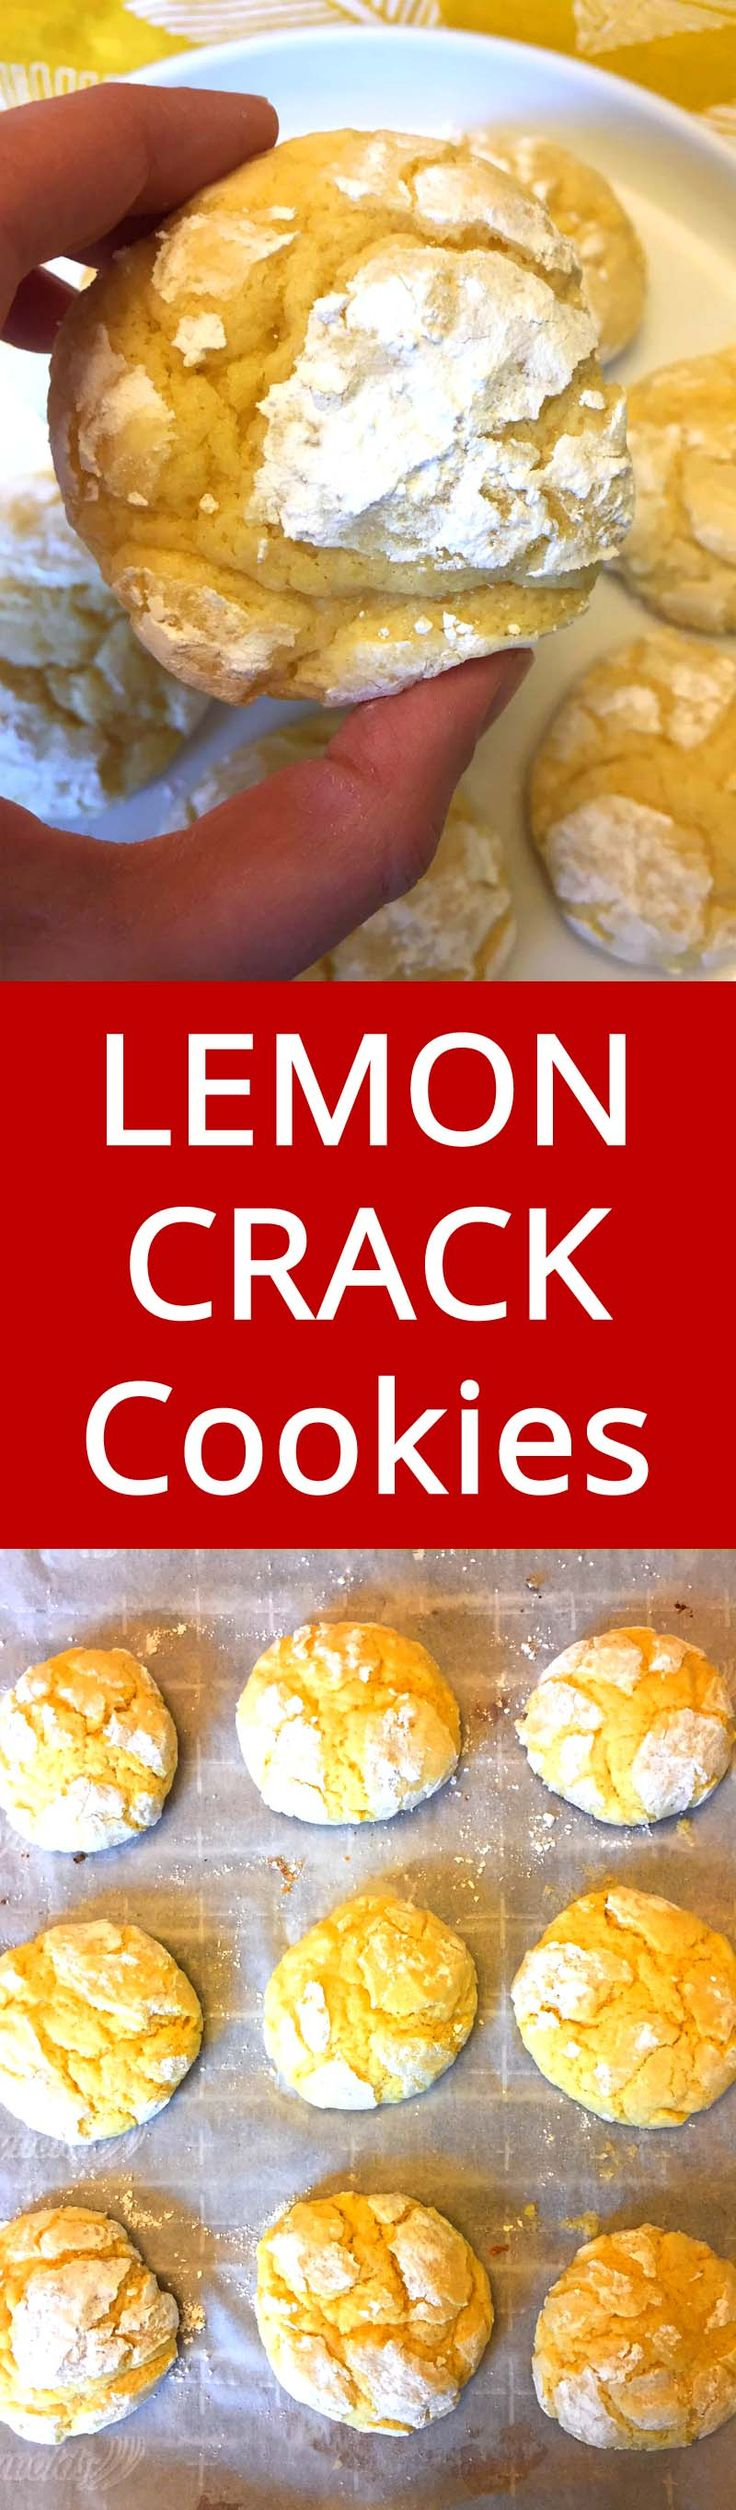 These cookies are sooo addictive - no wonder they are called lemon crack! This is my favorite lemon crinkles cookies recipe - BEST EVER!